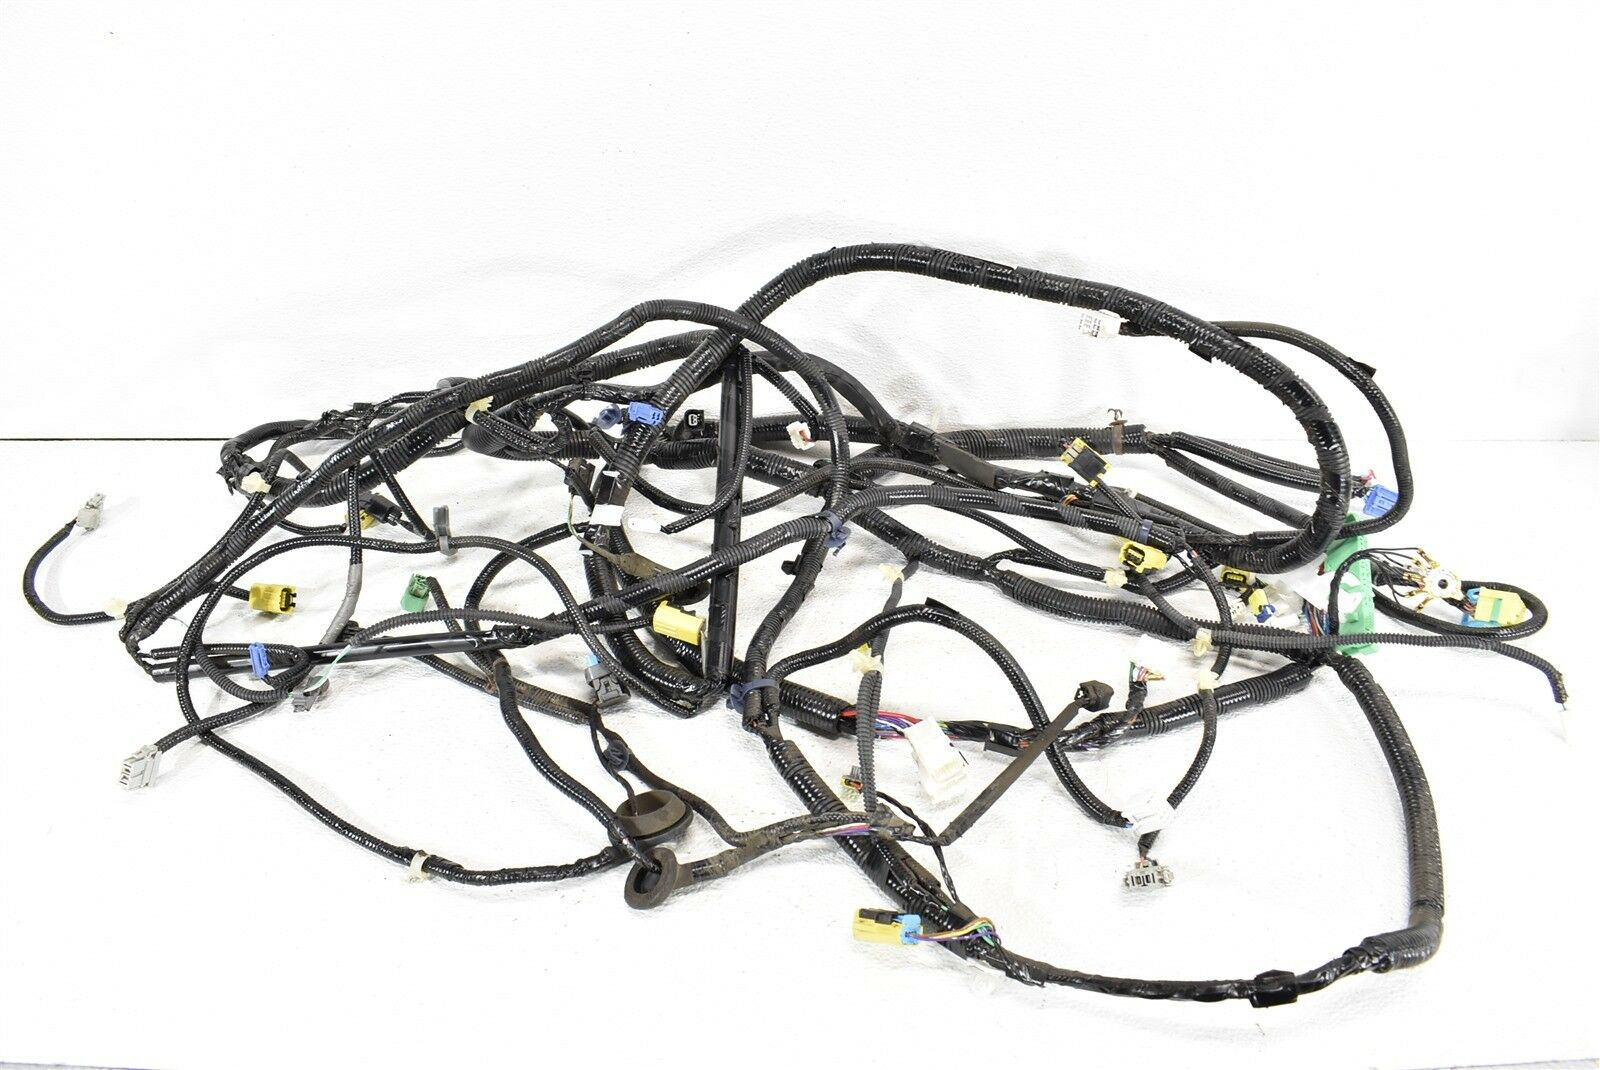 2012-2015 Honda Civic Si Floor Wire Harness Wiring 32107-tr7-a124 Sedan  12-15 | eBay | Civic Wiring Harness |  | eBay